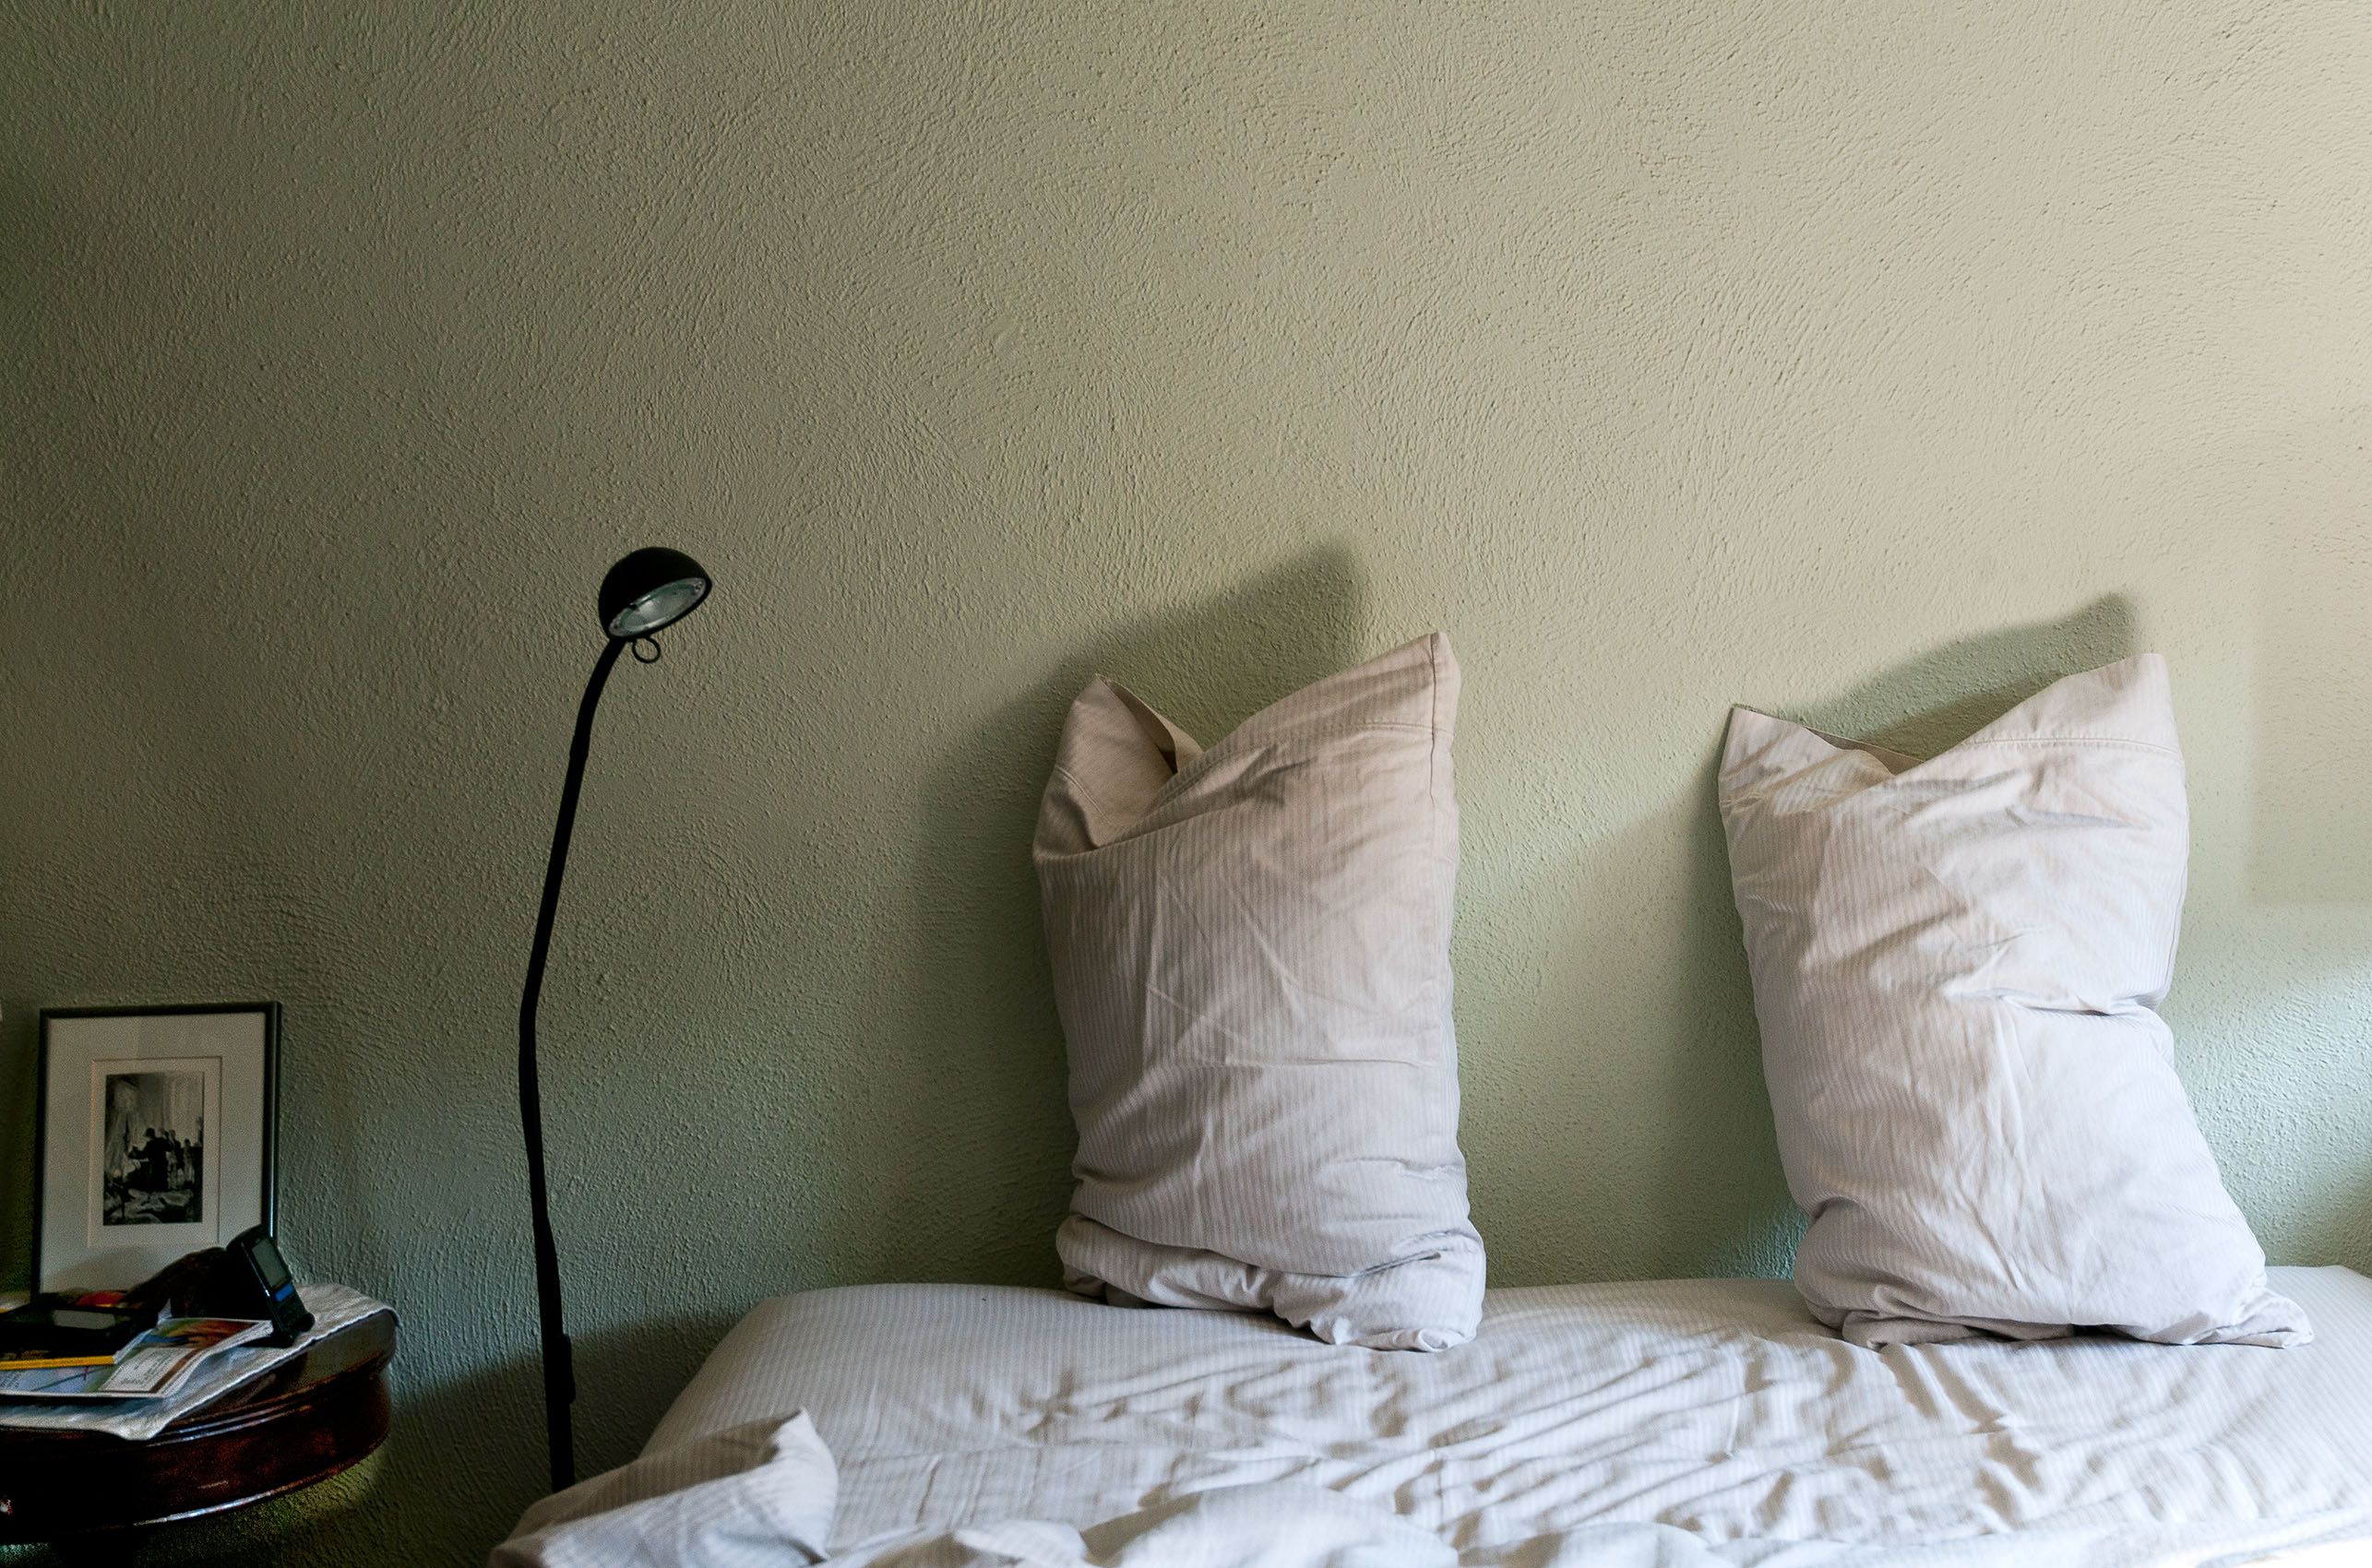 Pillows Airing on Bed